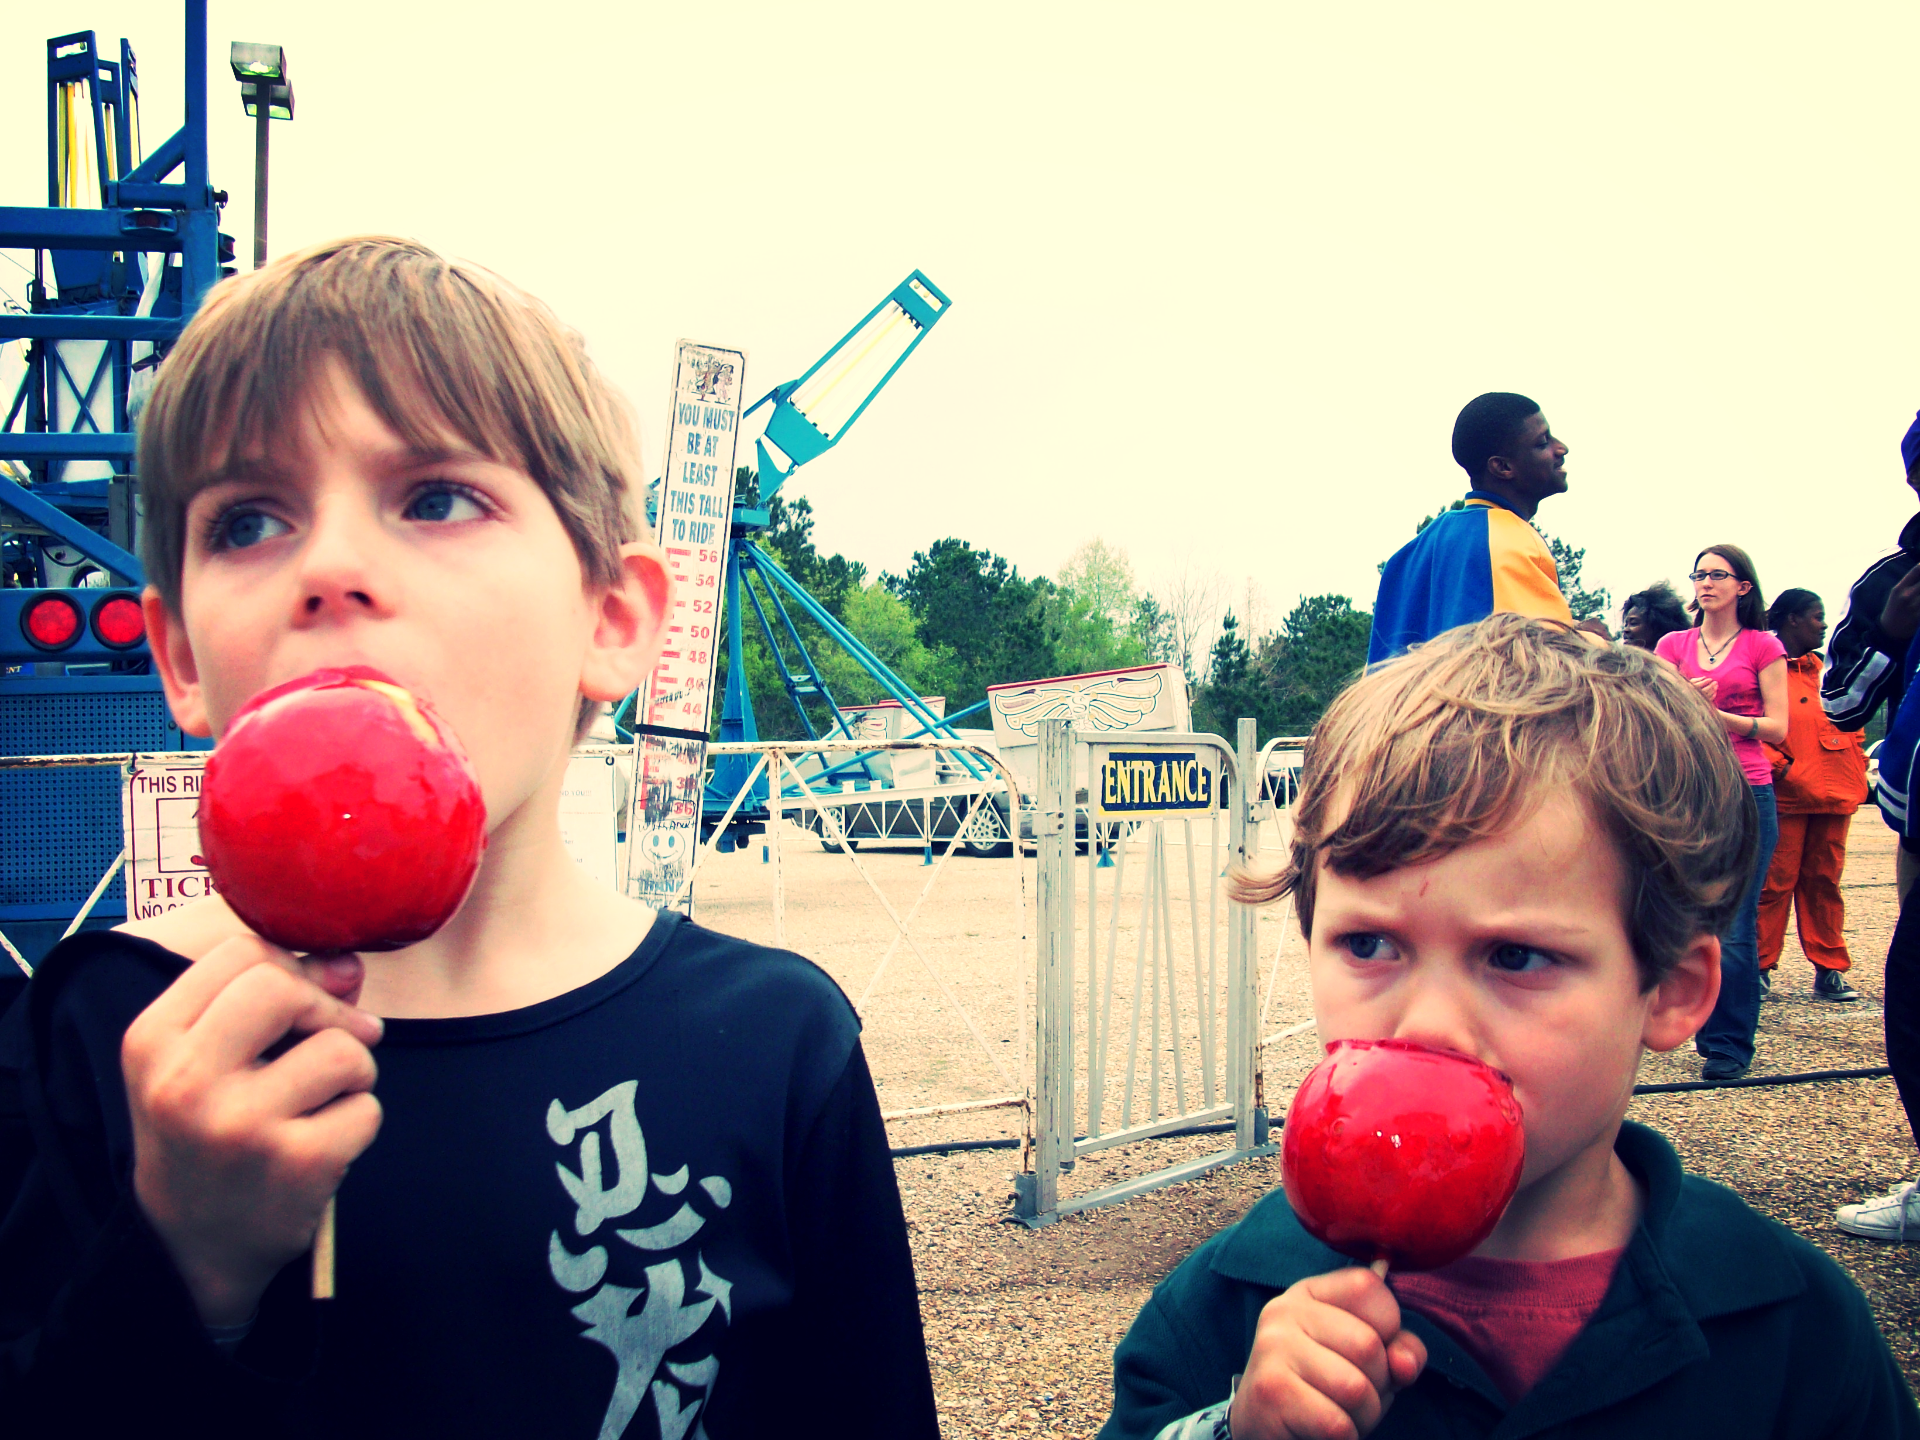 2 young boys enjoy a candy apple